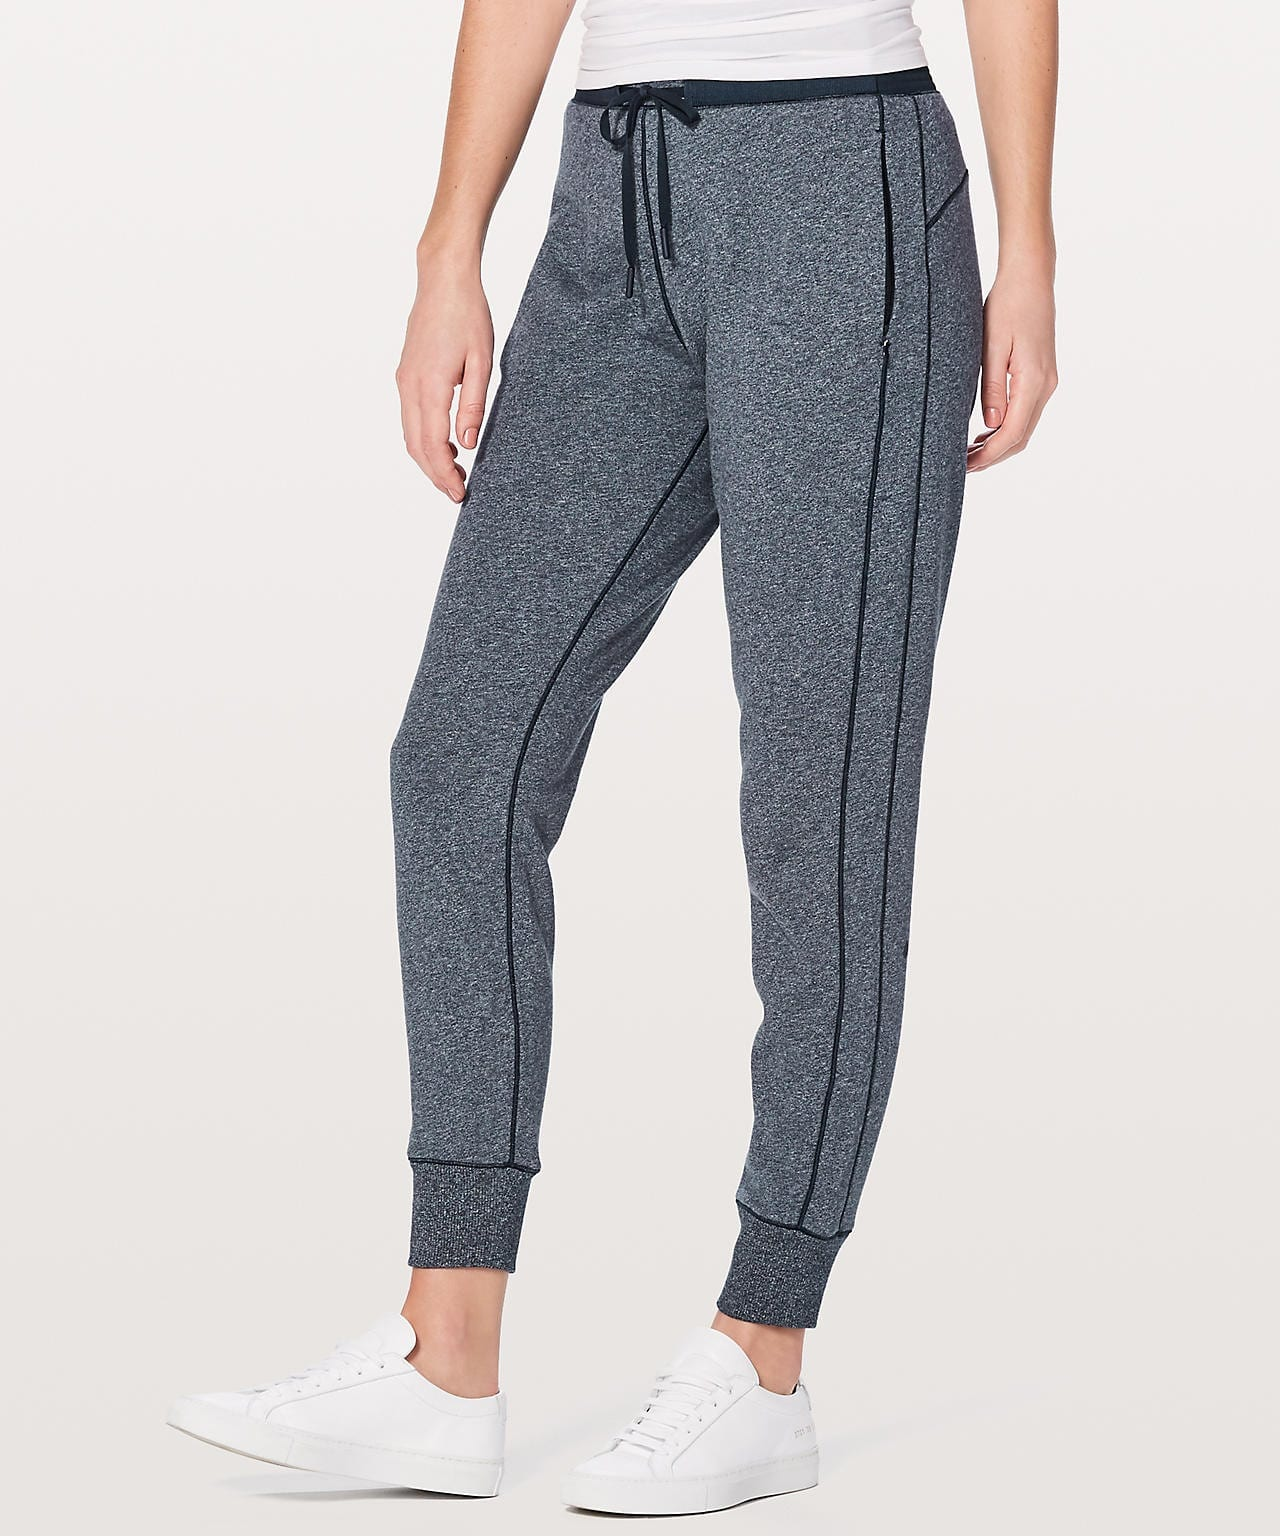 Cool & Collected Jogger